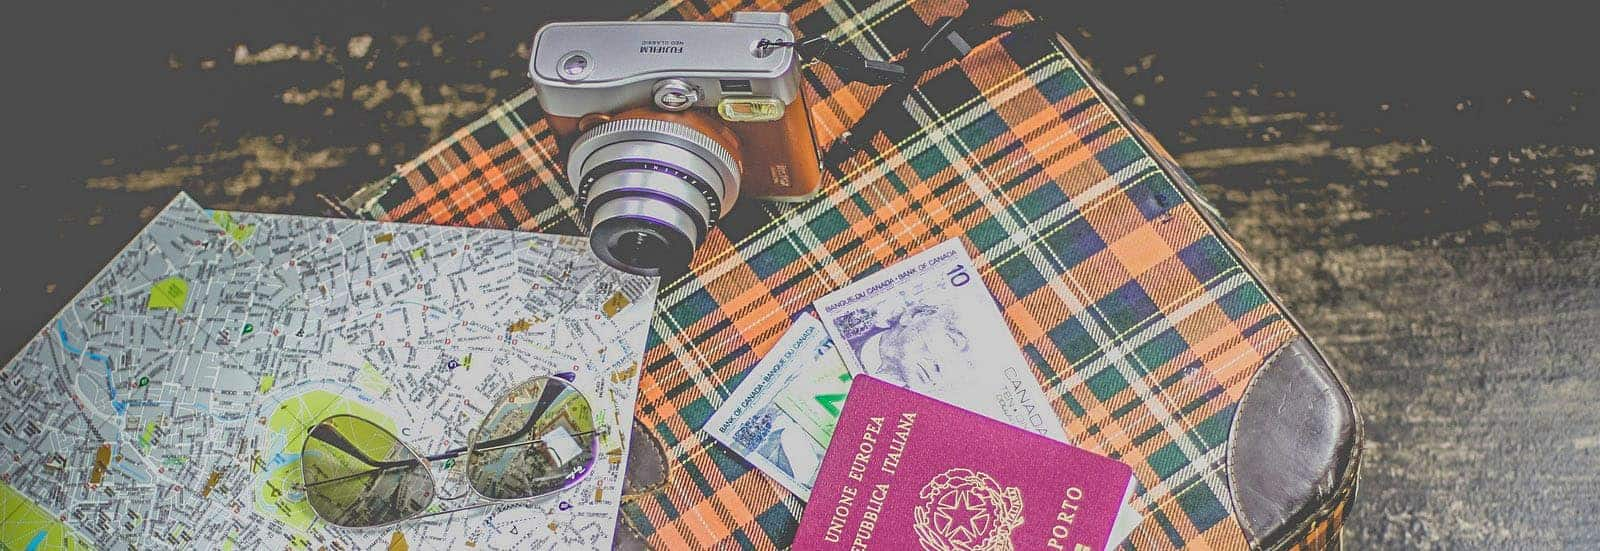 money to travel and travel gear on a table